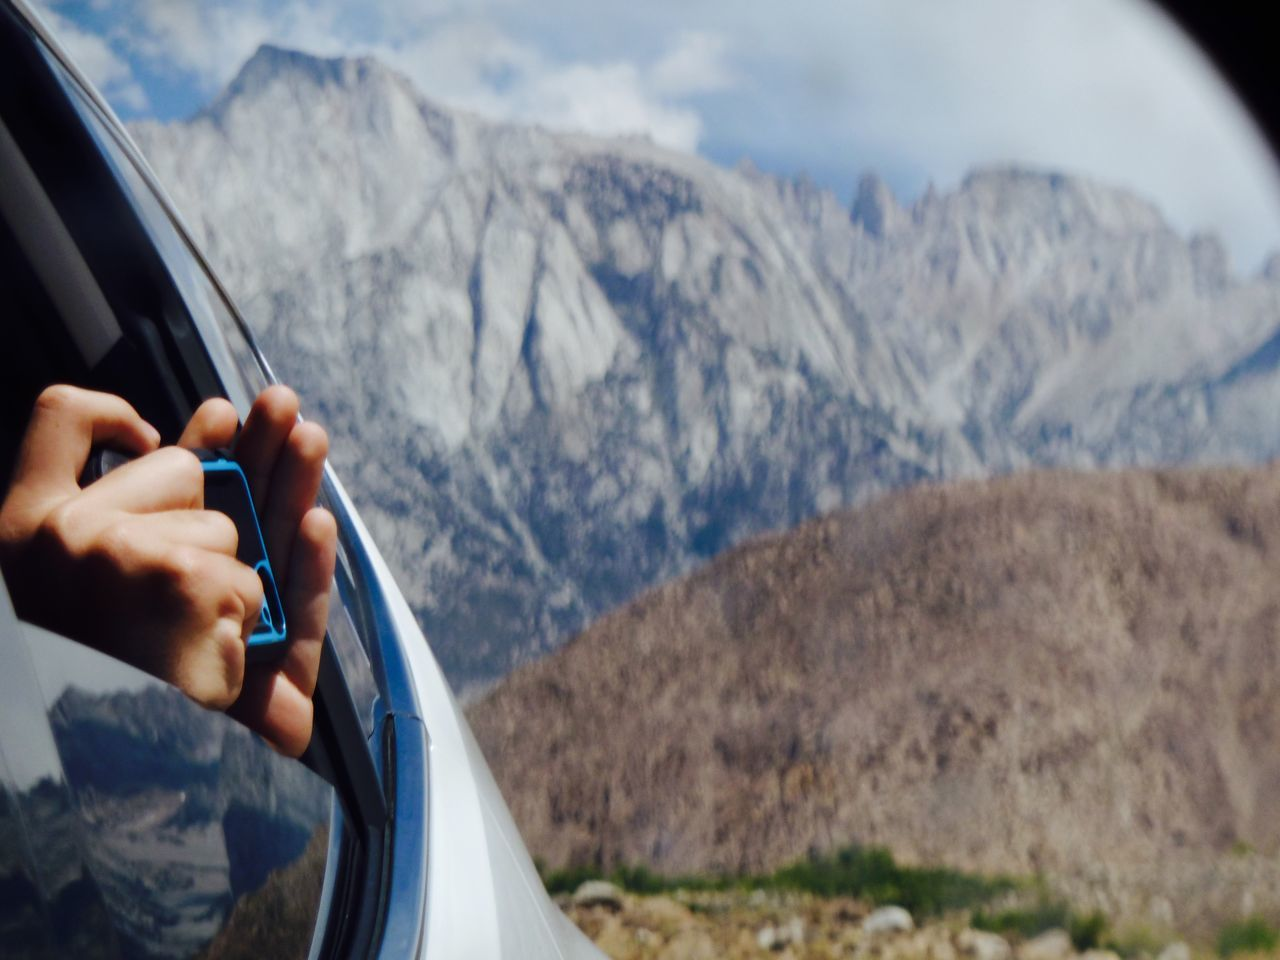 Documenting Travel Hands Holding Camera In Moving Car Mt. Whitney High Sierra Hands Holding Camera Reflections In Car Windows Landscapes Mountain Mountains In Background Scenics Sierra Nevada Mountains Taking Photos Travel Joy Of Travel Road Trip Exploring California Whitney Portal Road